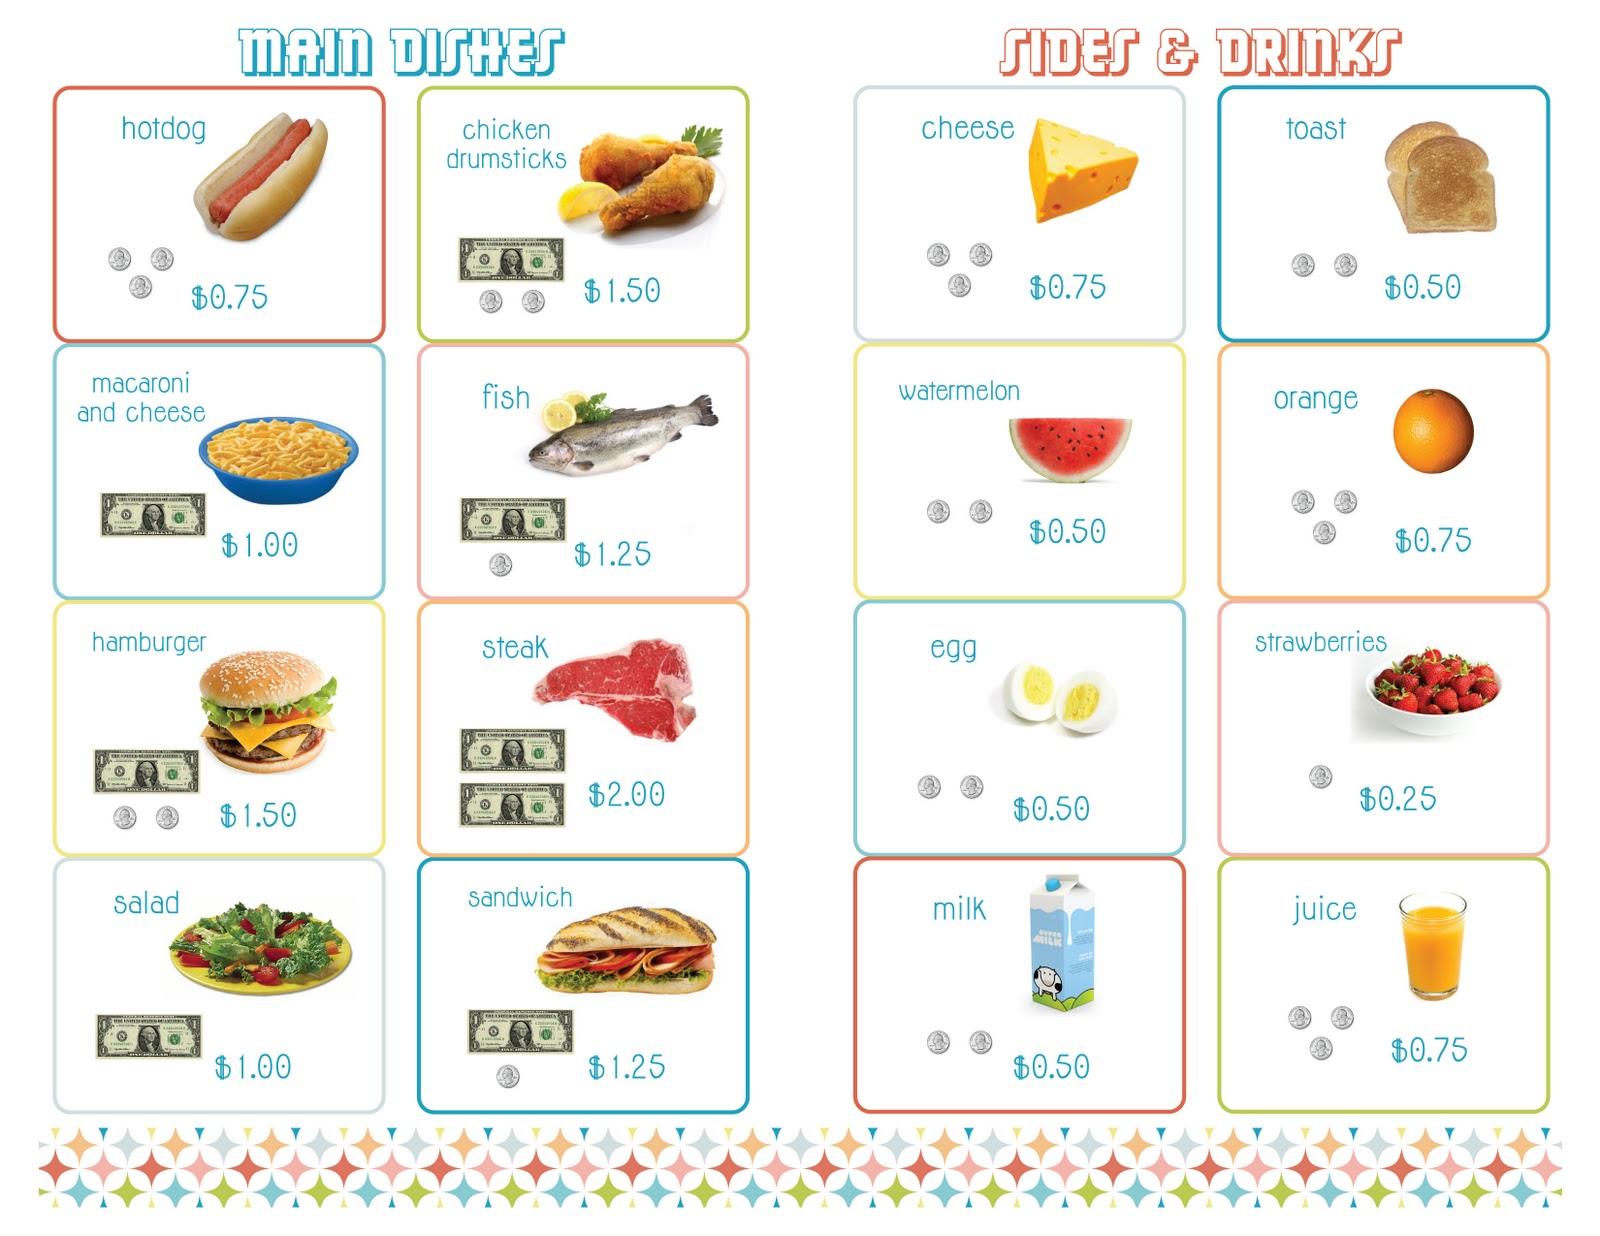 amy j delightful blog PRINTABLE Menus for Playing Restaurant – Free Printable Menu Math Worksheets